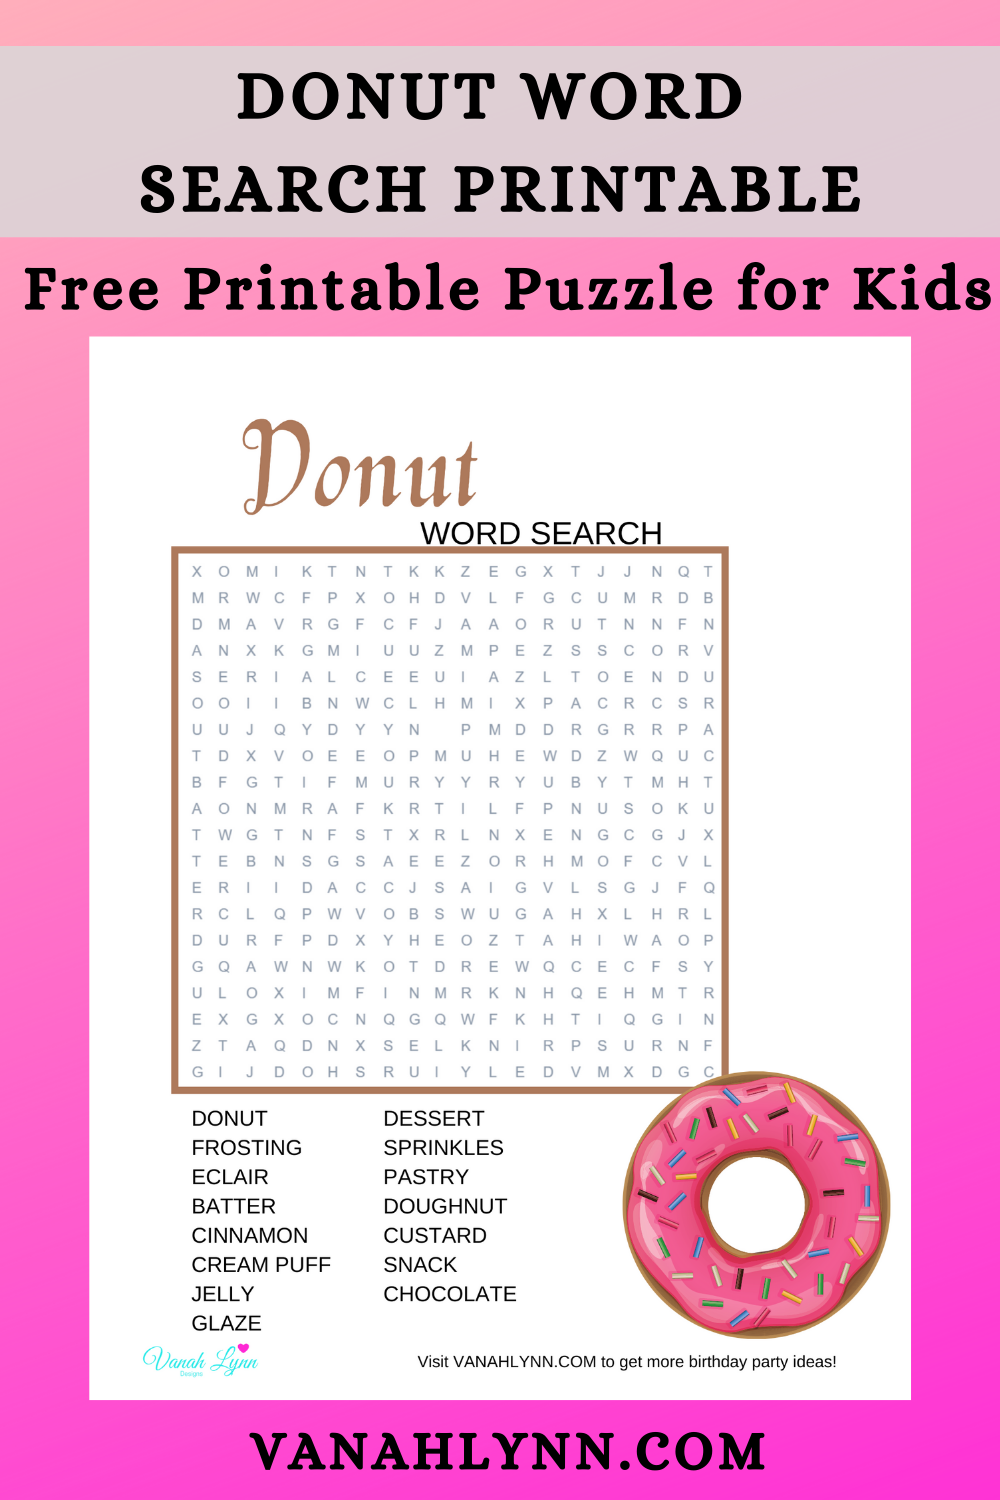 donut birthday party activity ideas for kids